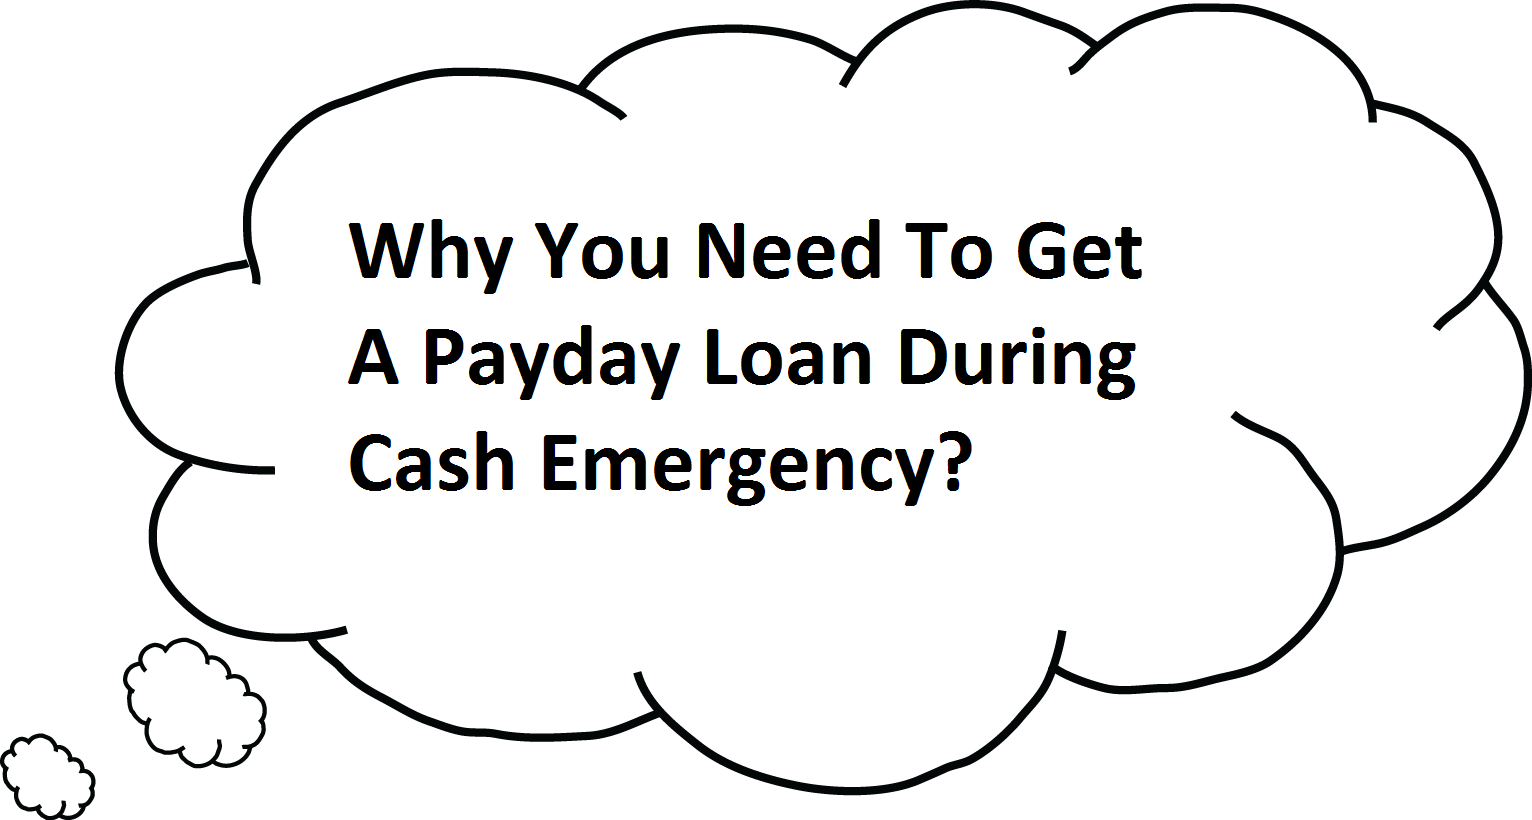 Cash loans in las cruces nm image 3